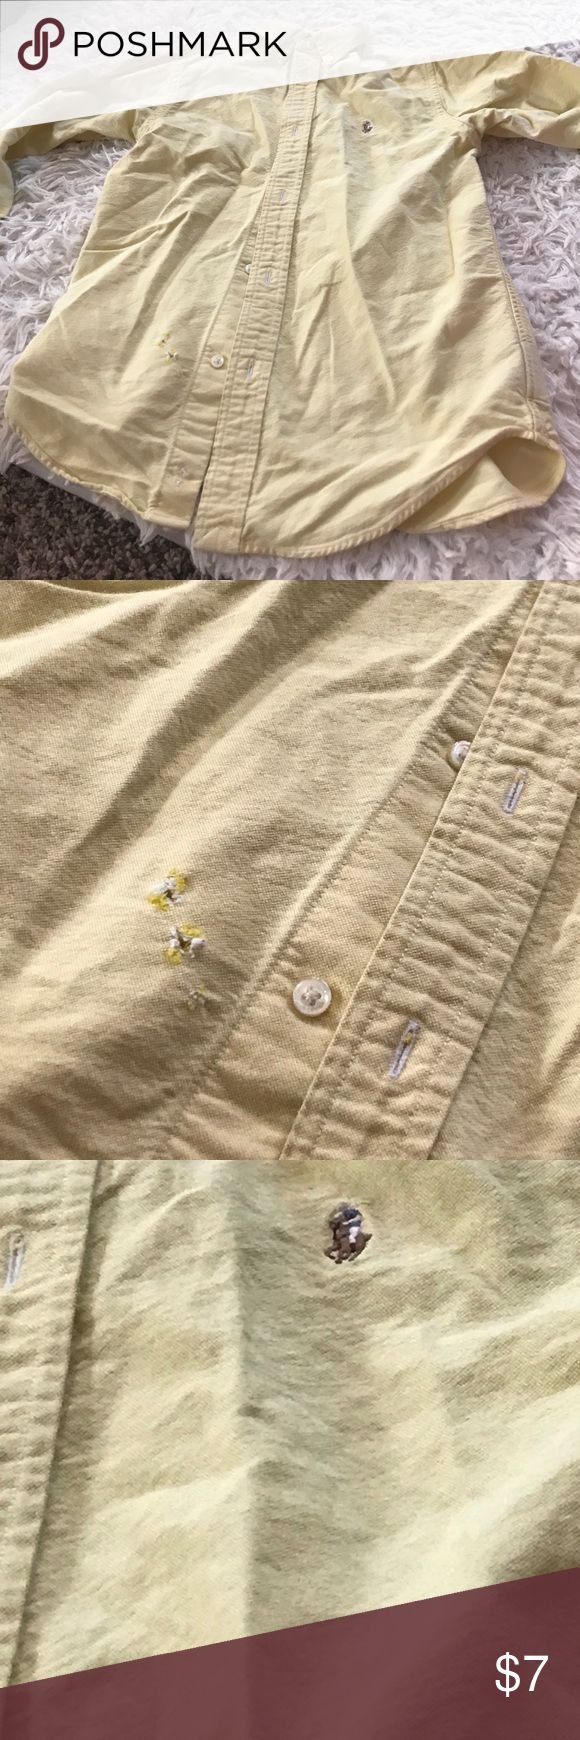 Boys polo Ralph Lauren dress shirt Good condition! 2 Small holes on front where gets tucked in and was snagged on my sons zipper other than that  like brand new!!! Comes from per free and smoke free home!  Feel free to make an offer as no price is set in stone 😜 Polo by Ralph Lauren Shirts & Tops Button Down Shirts